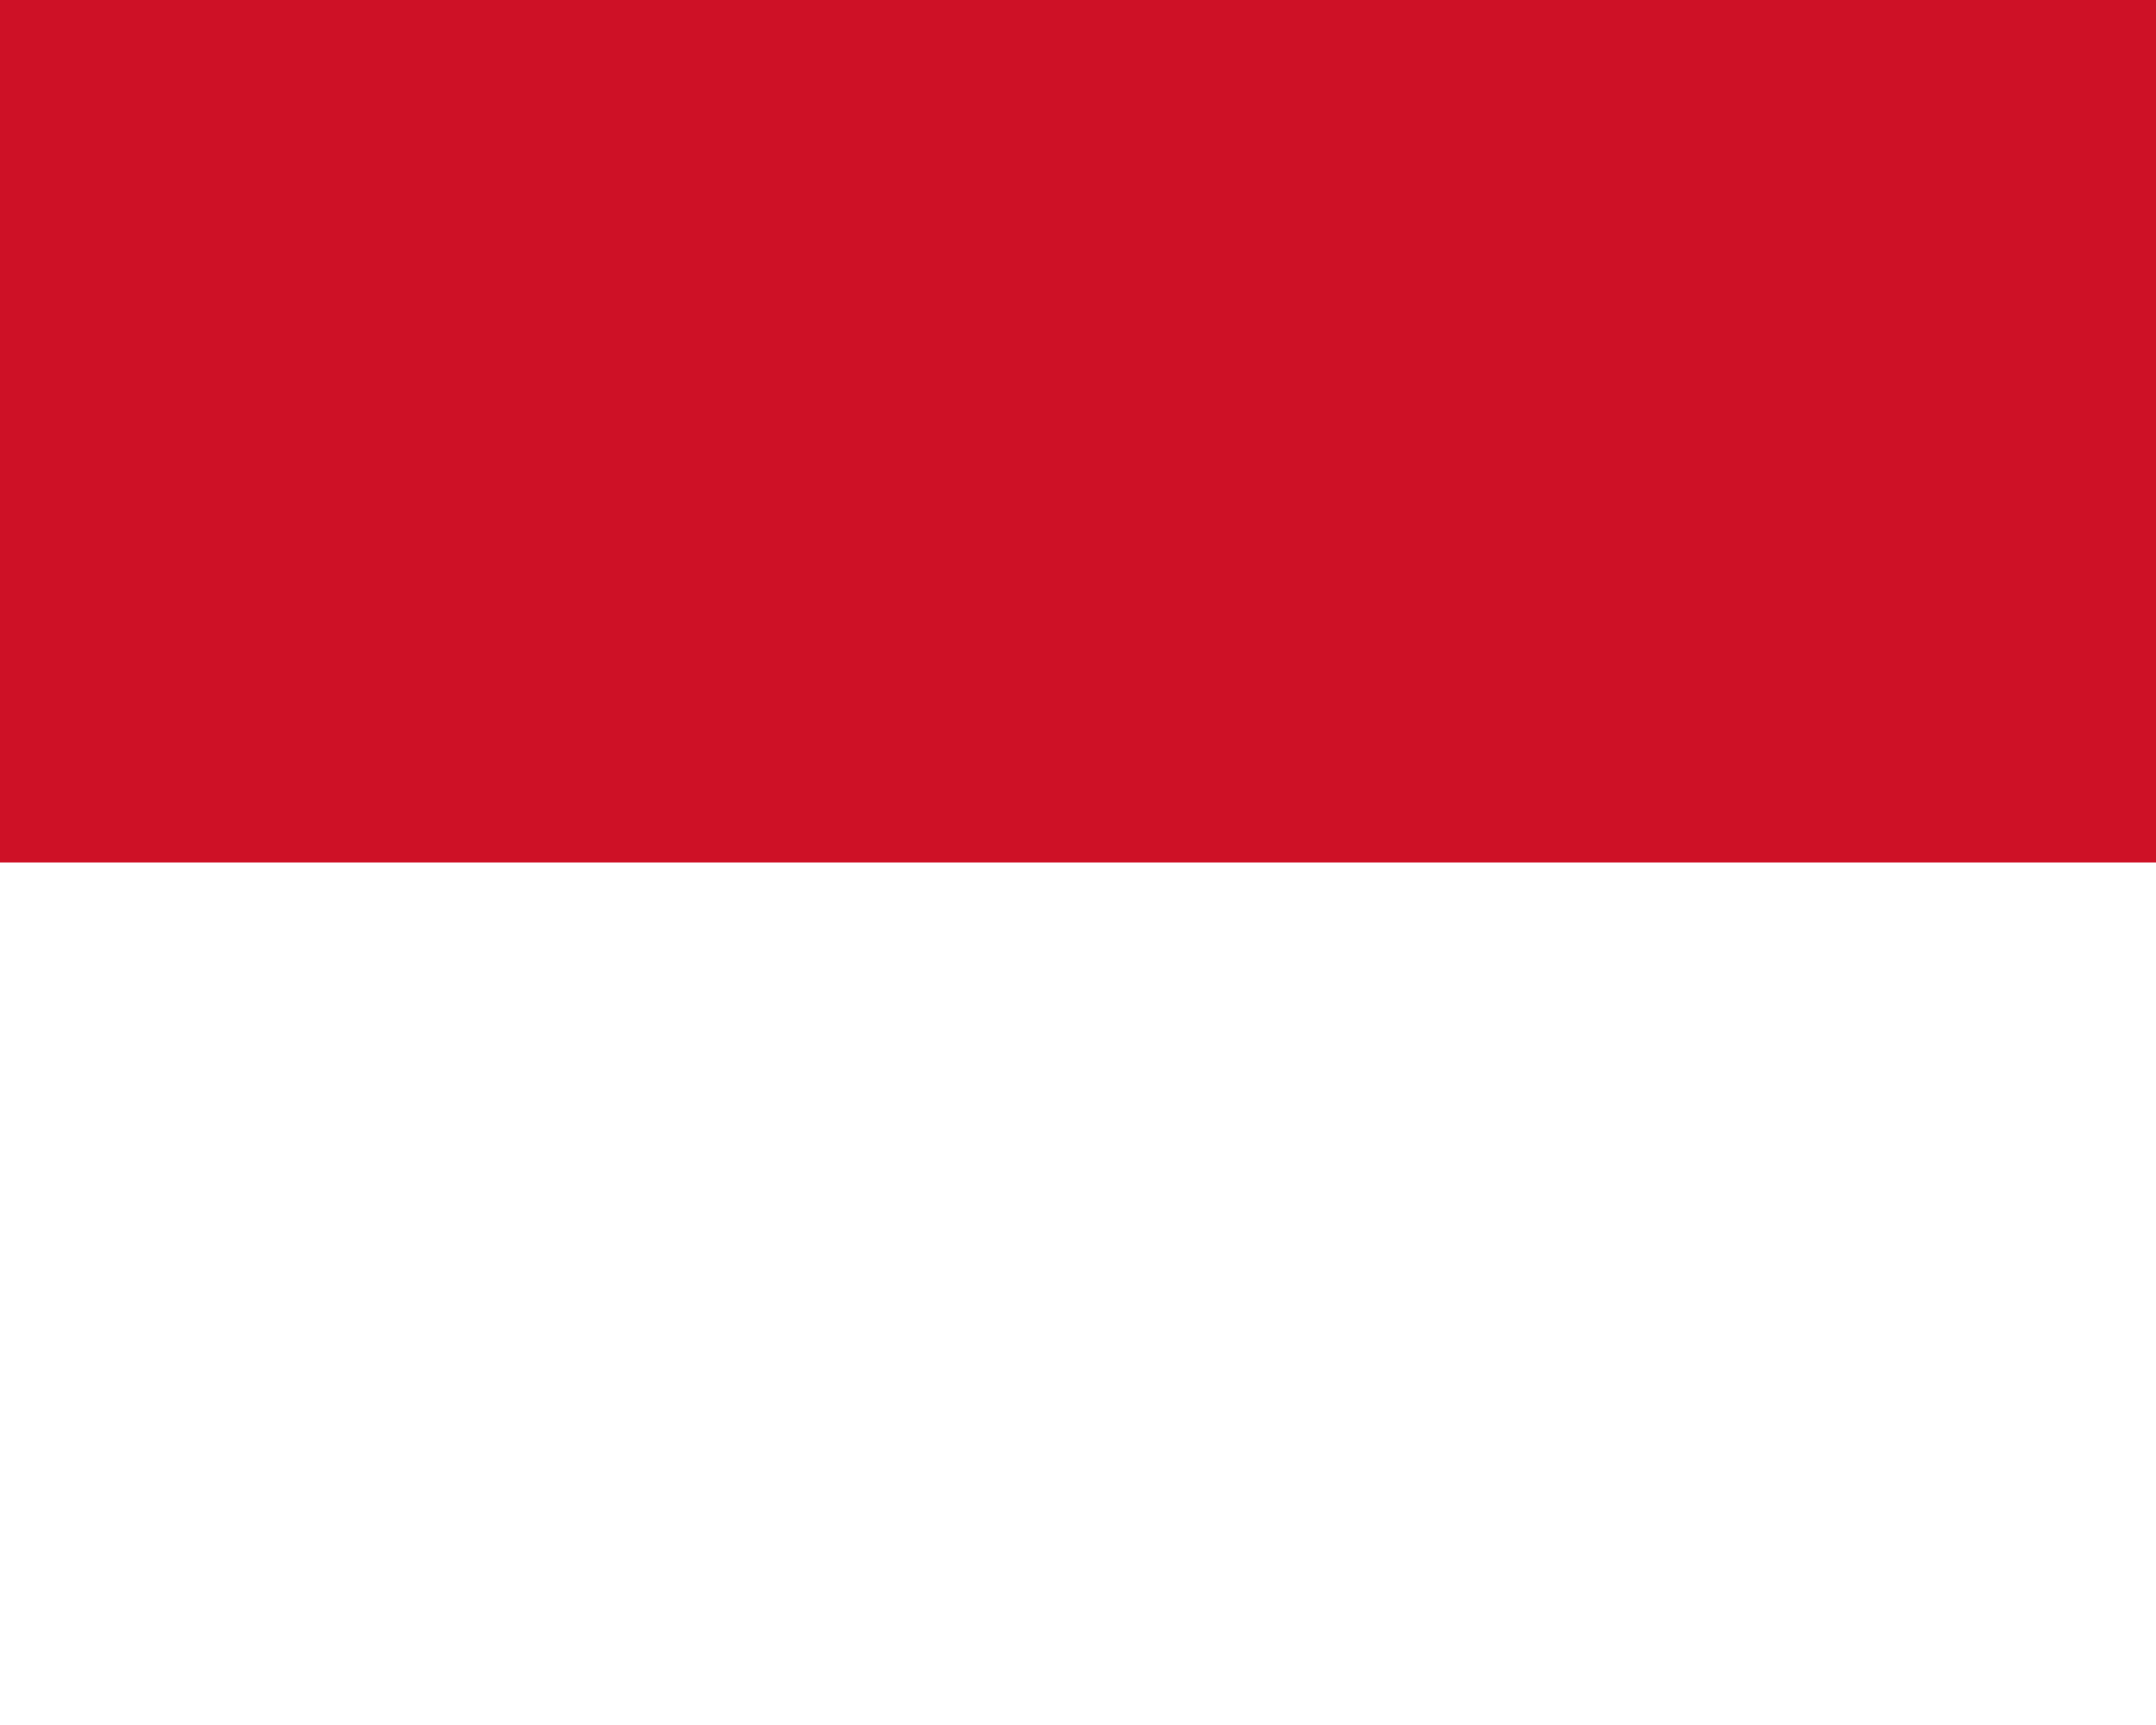 Monaco Flag Picture PNG Image